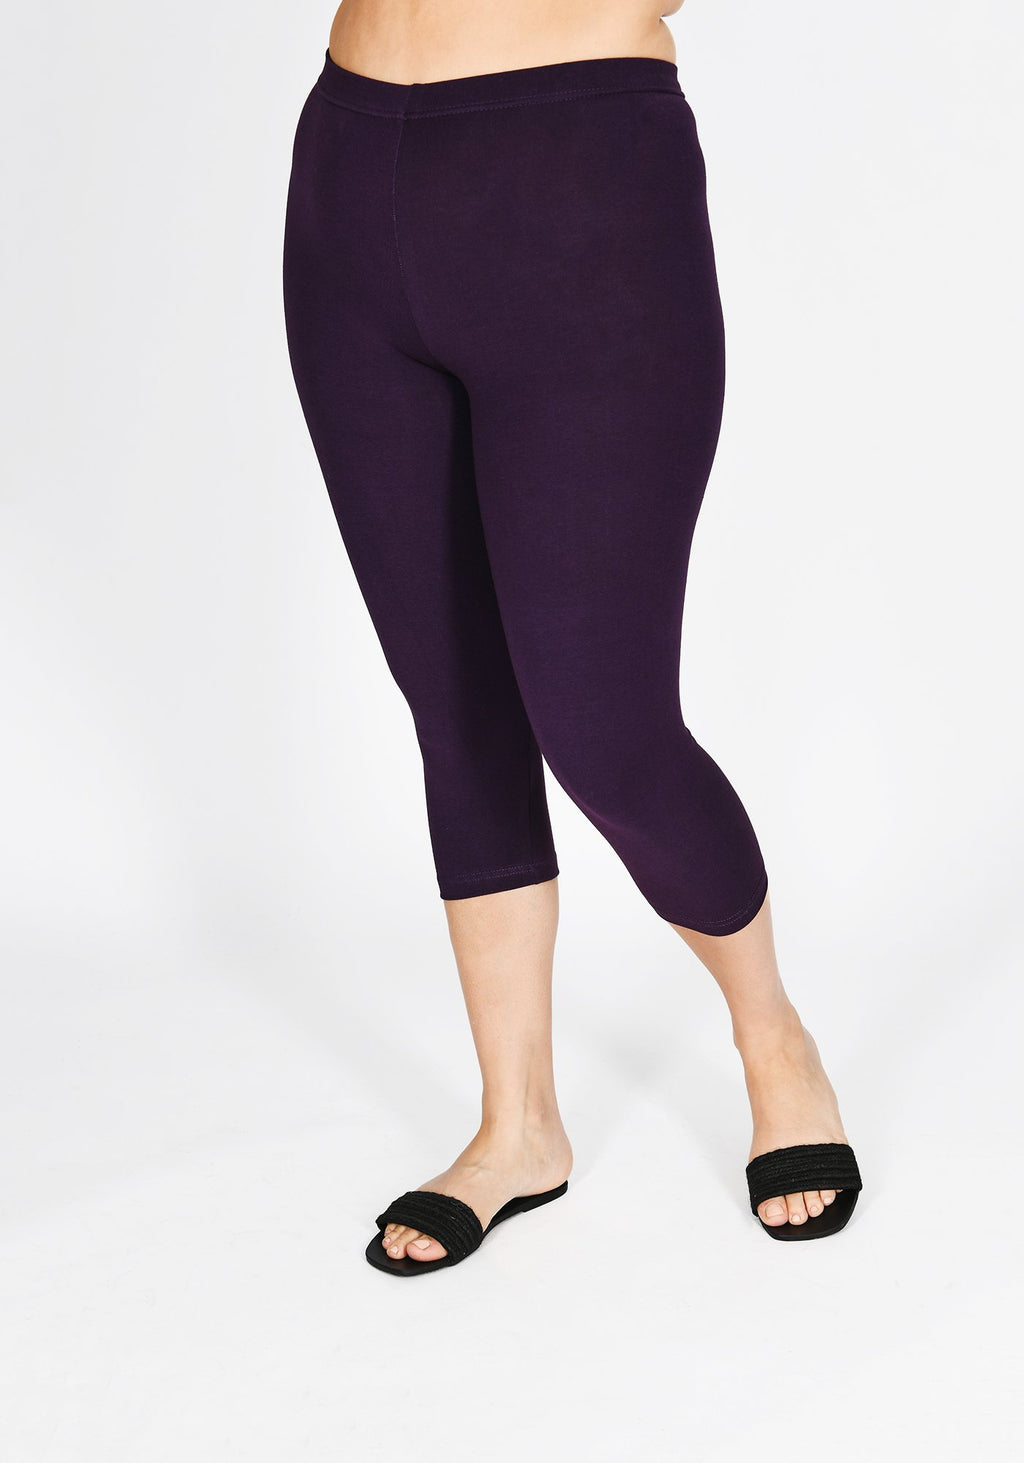 Plus Size Acai Purple Cropped Leggings 1